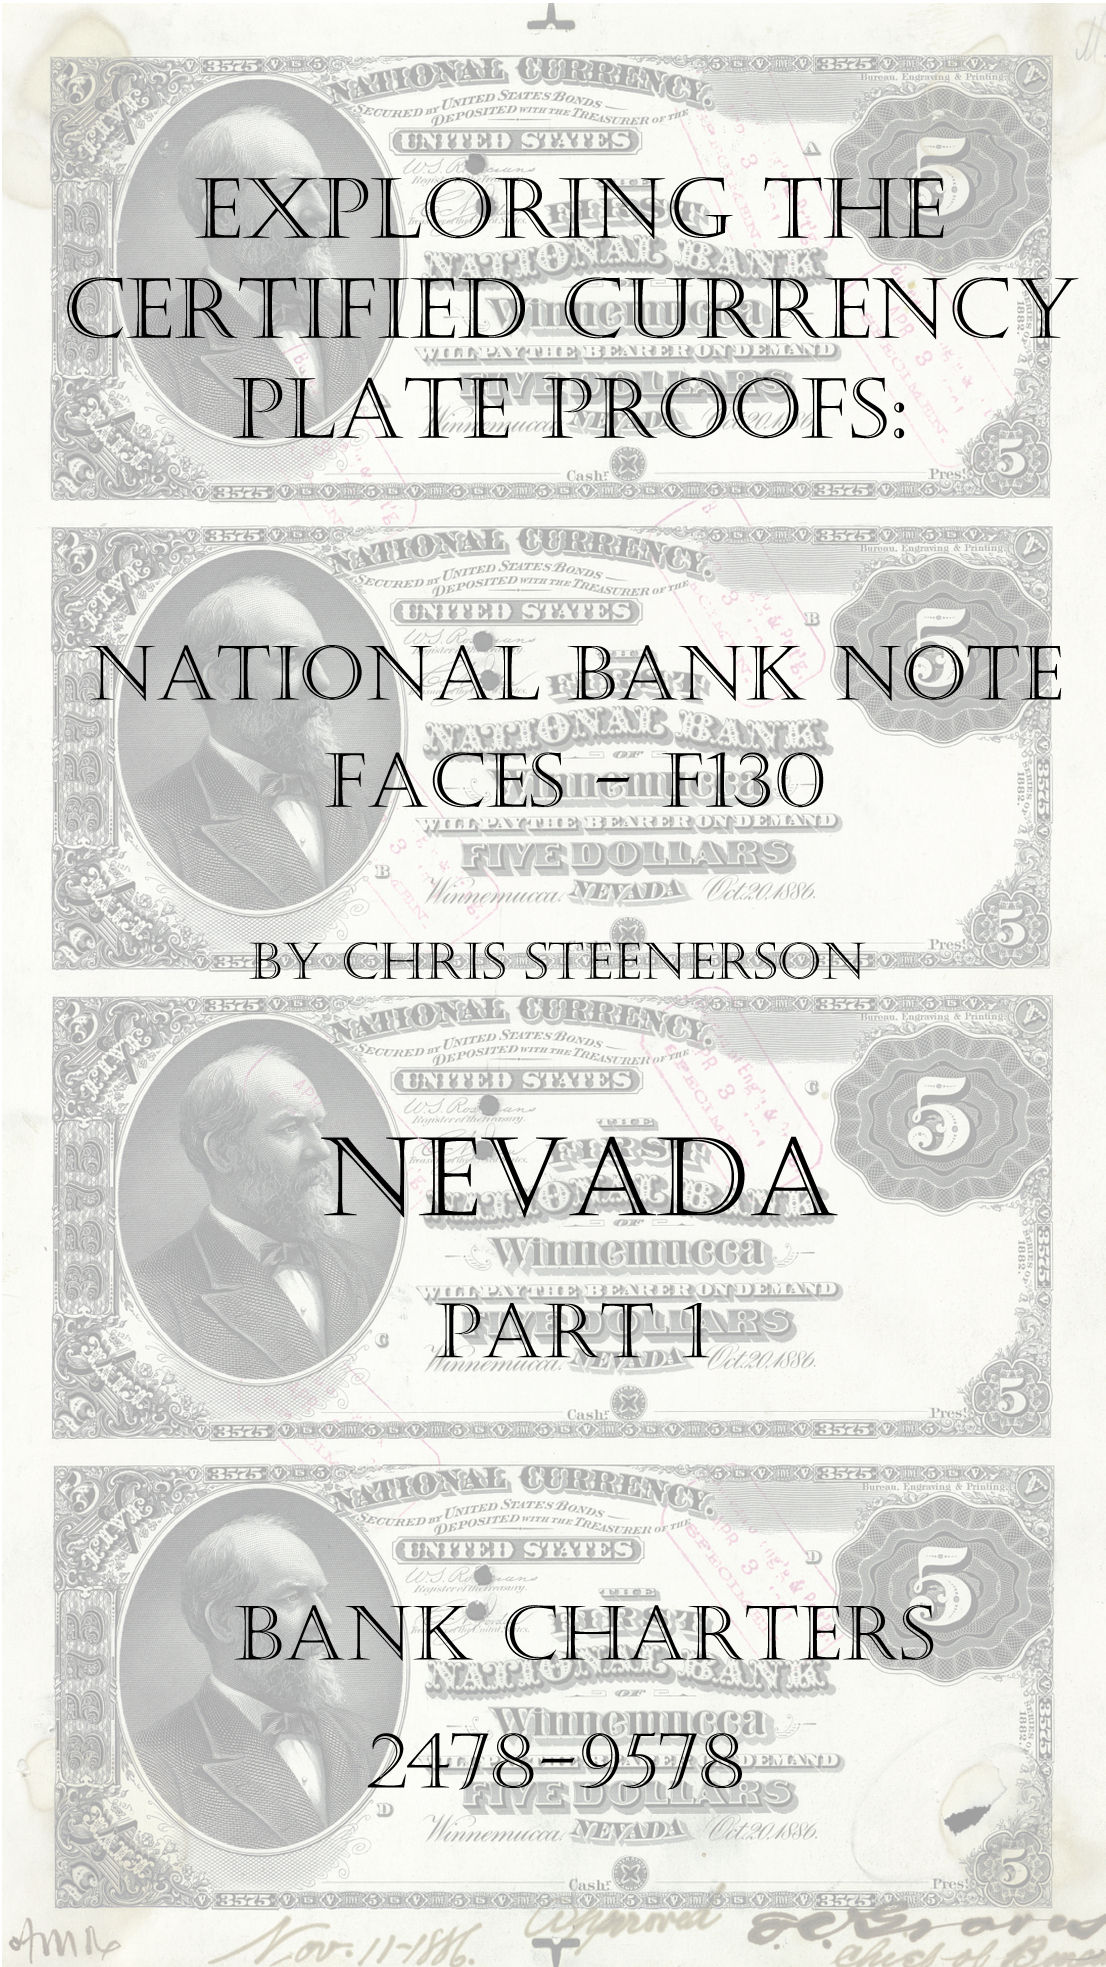 Nevada National Bank Note Currency Proofs